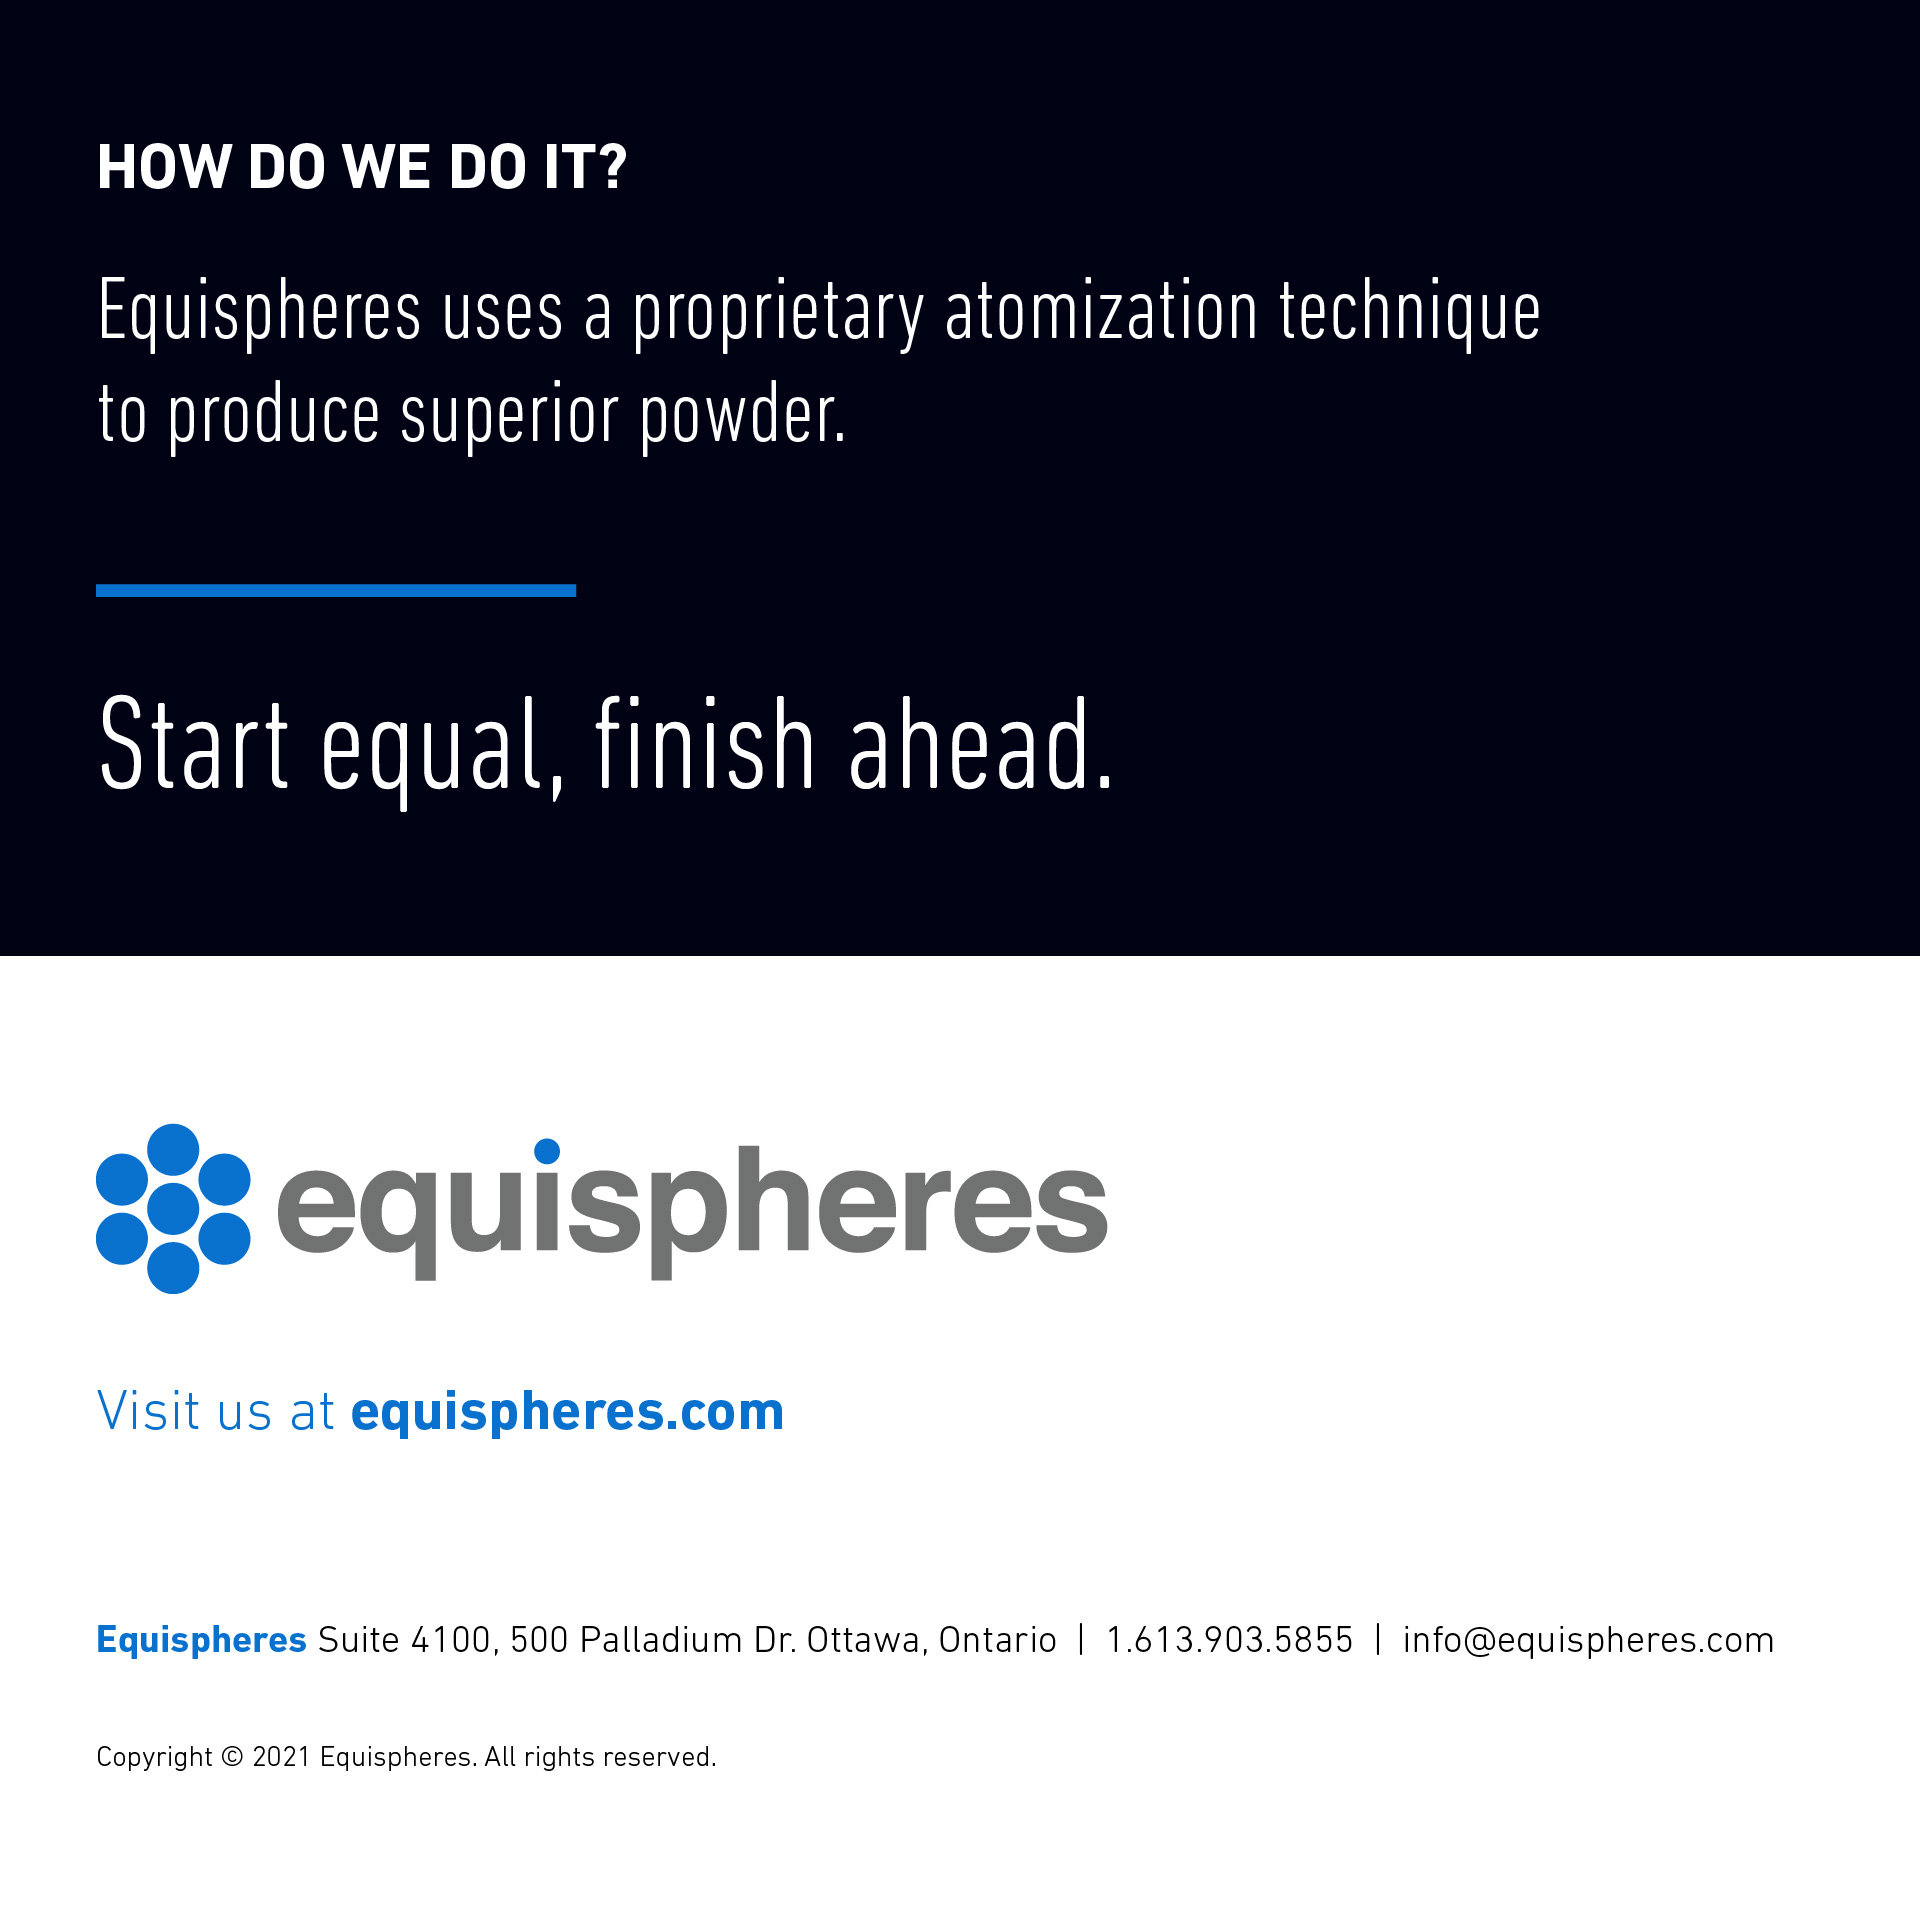 Equispheres uses a proprietary atomization technique to produce superior metal powder for additive manufacturing.